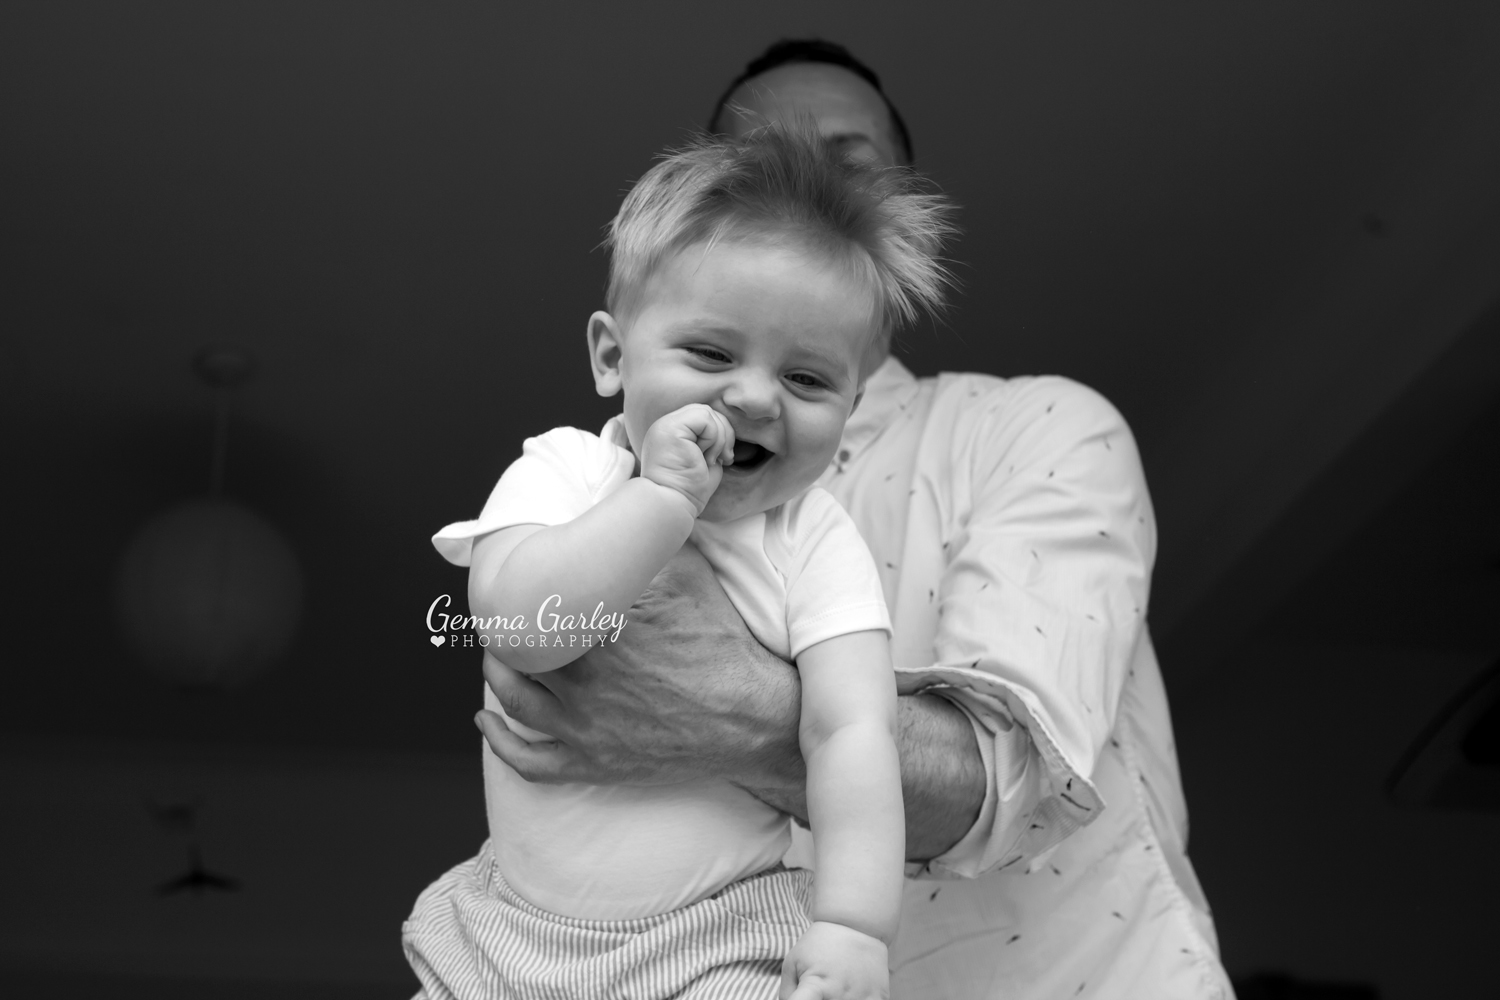 baby lifestyle photography baby photographer bournemouth poole dorset.jpg